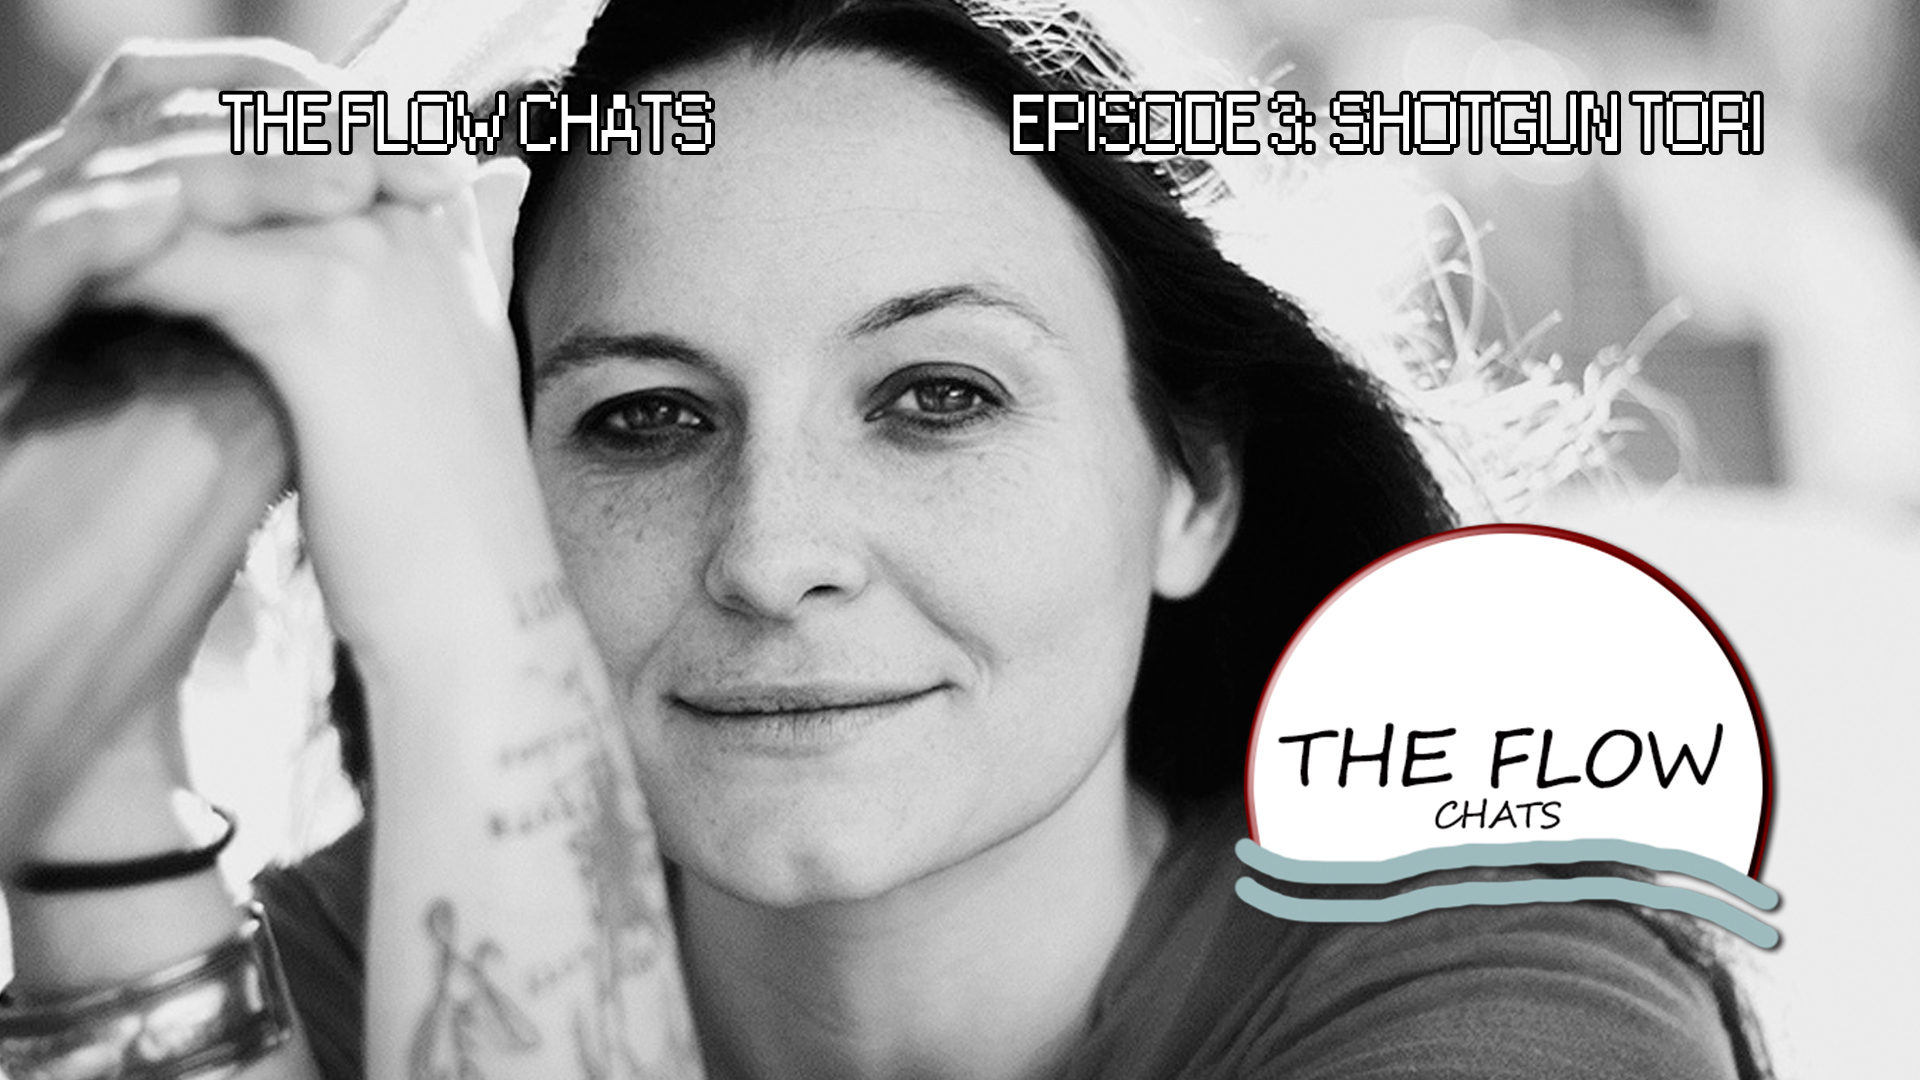 The Flow Chats 003: Shotgun Tori